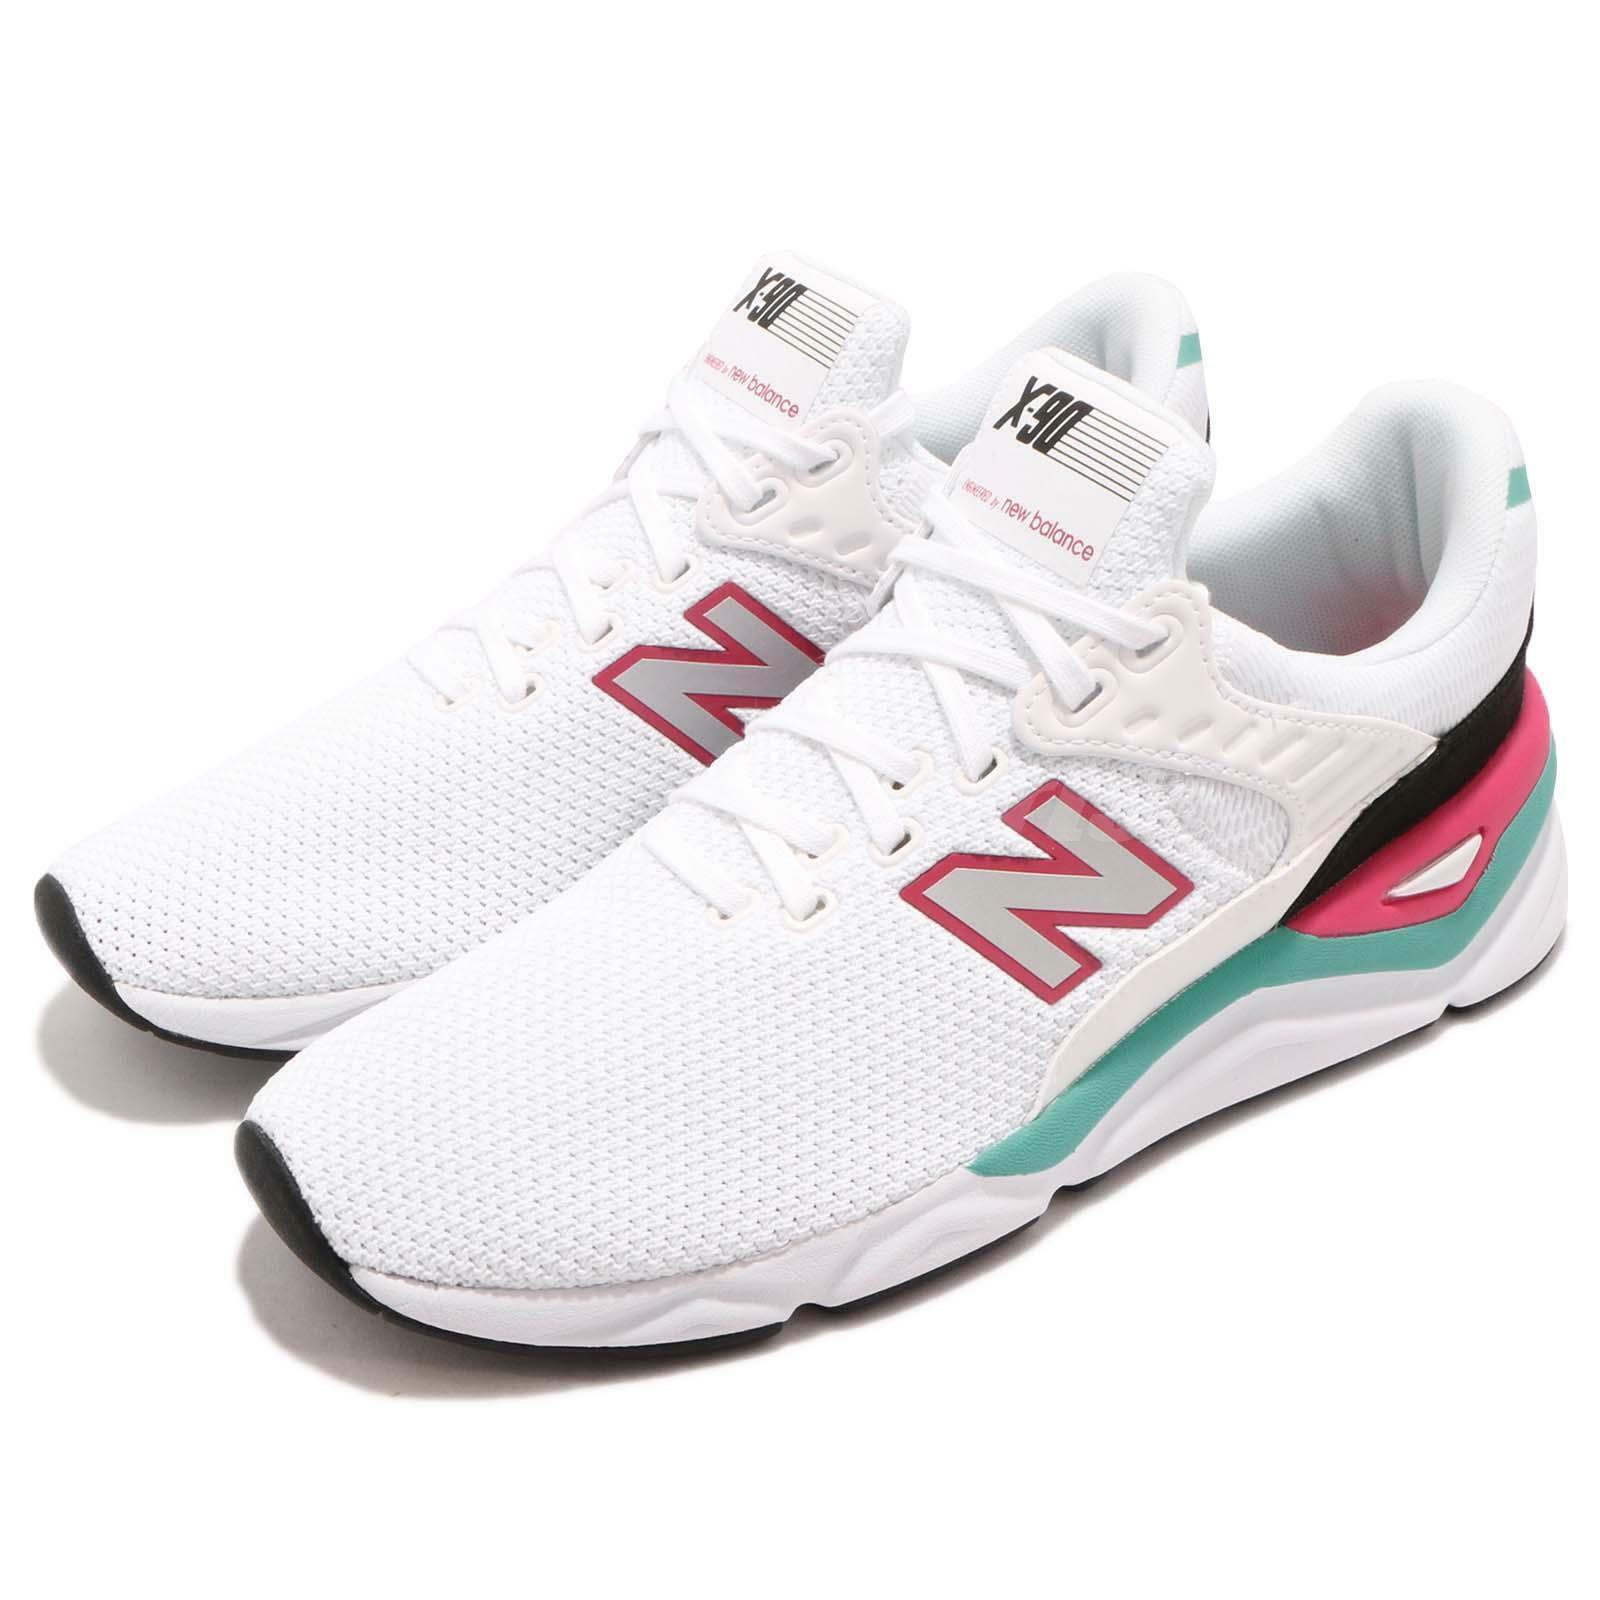 New Balance MSX90CRA D White Green  Pink Men Running shoes Sneakers MSX90CRAD  preferential